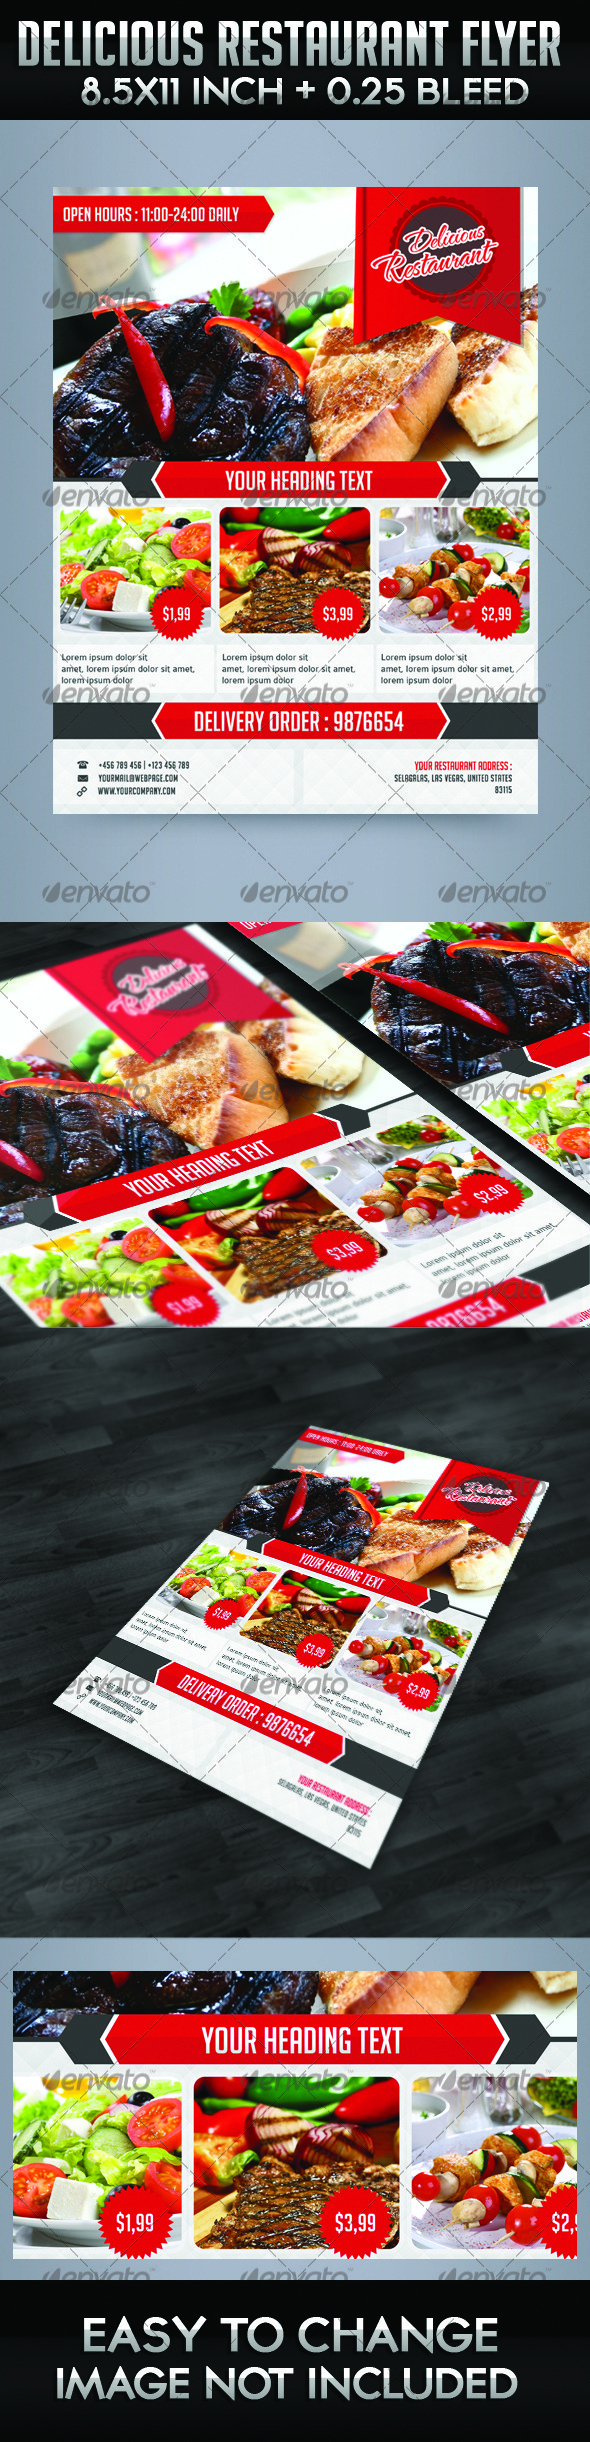 Delicious Restaurant Flyer Template - Restaurant Flyers